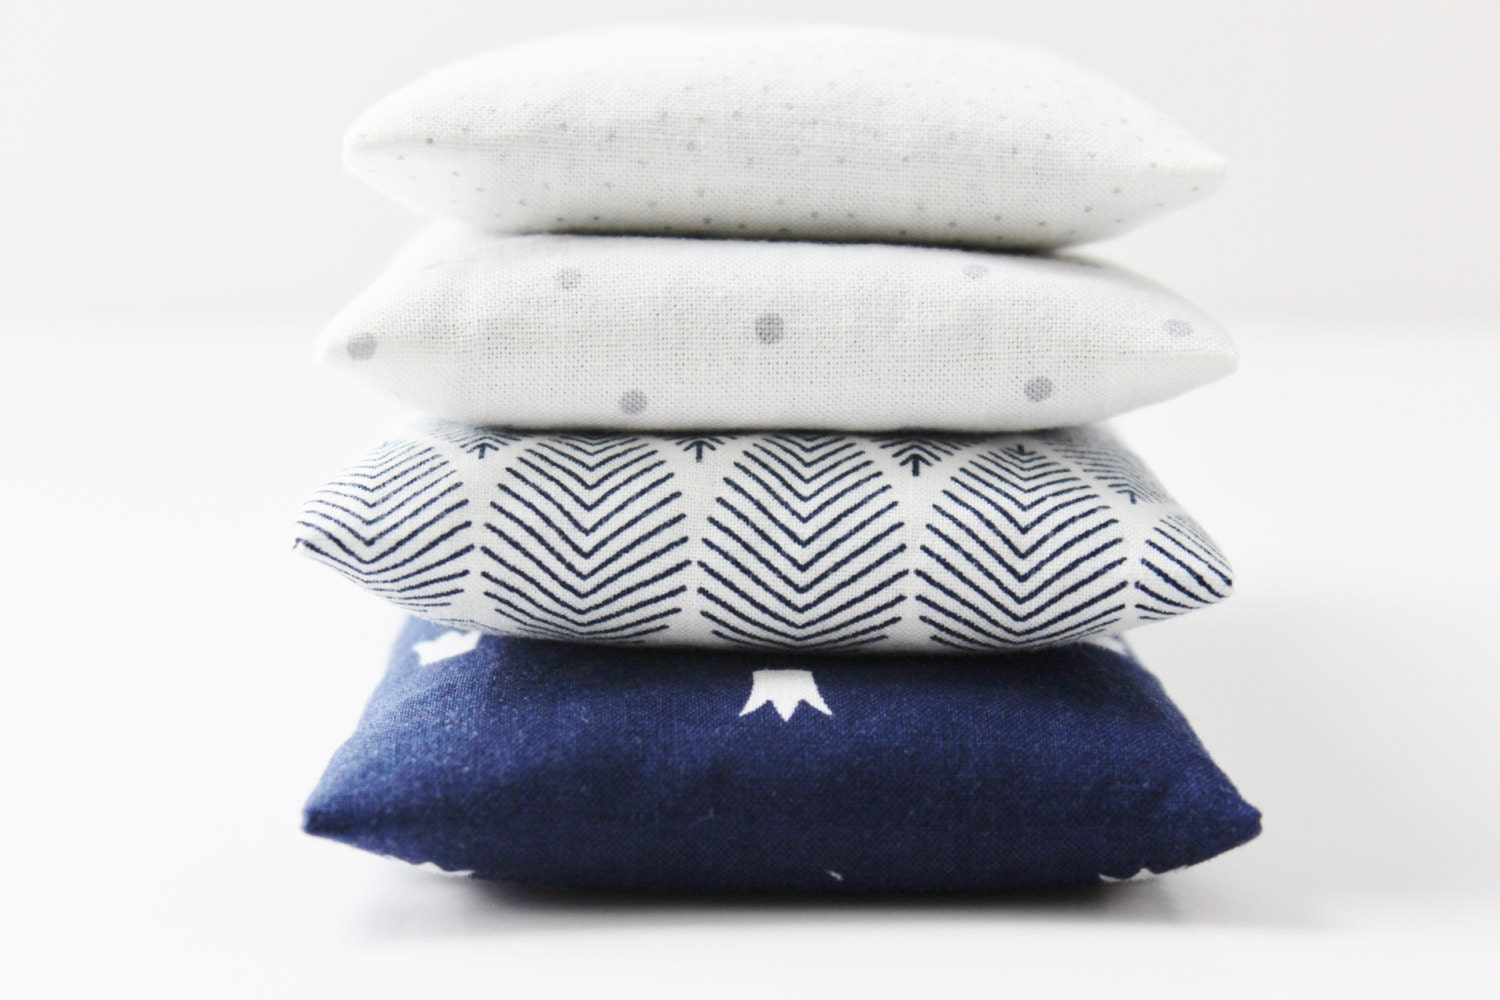 Set of 4 Modern Lavender Bags, Scented Drawer Sachets, White Grey & Navy - Gardenmis